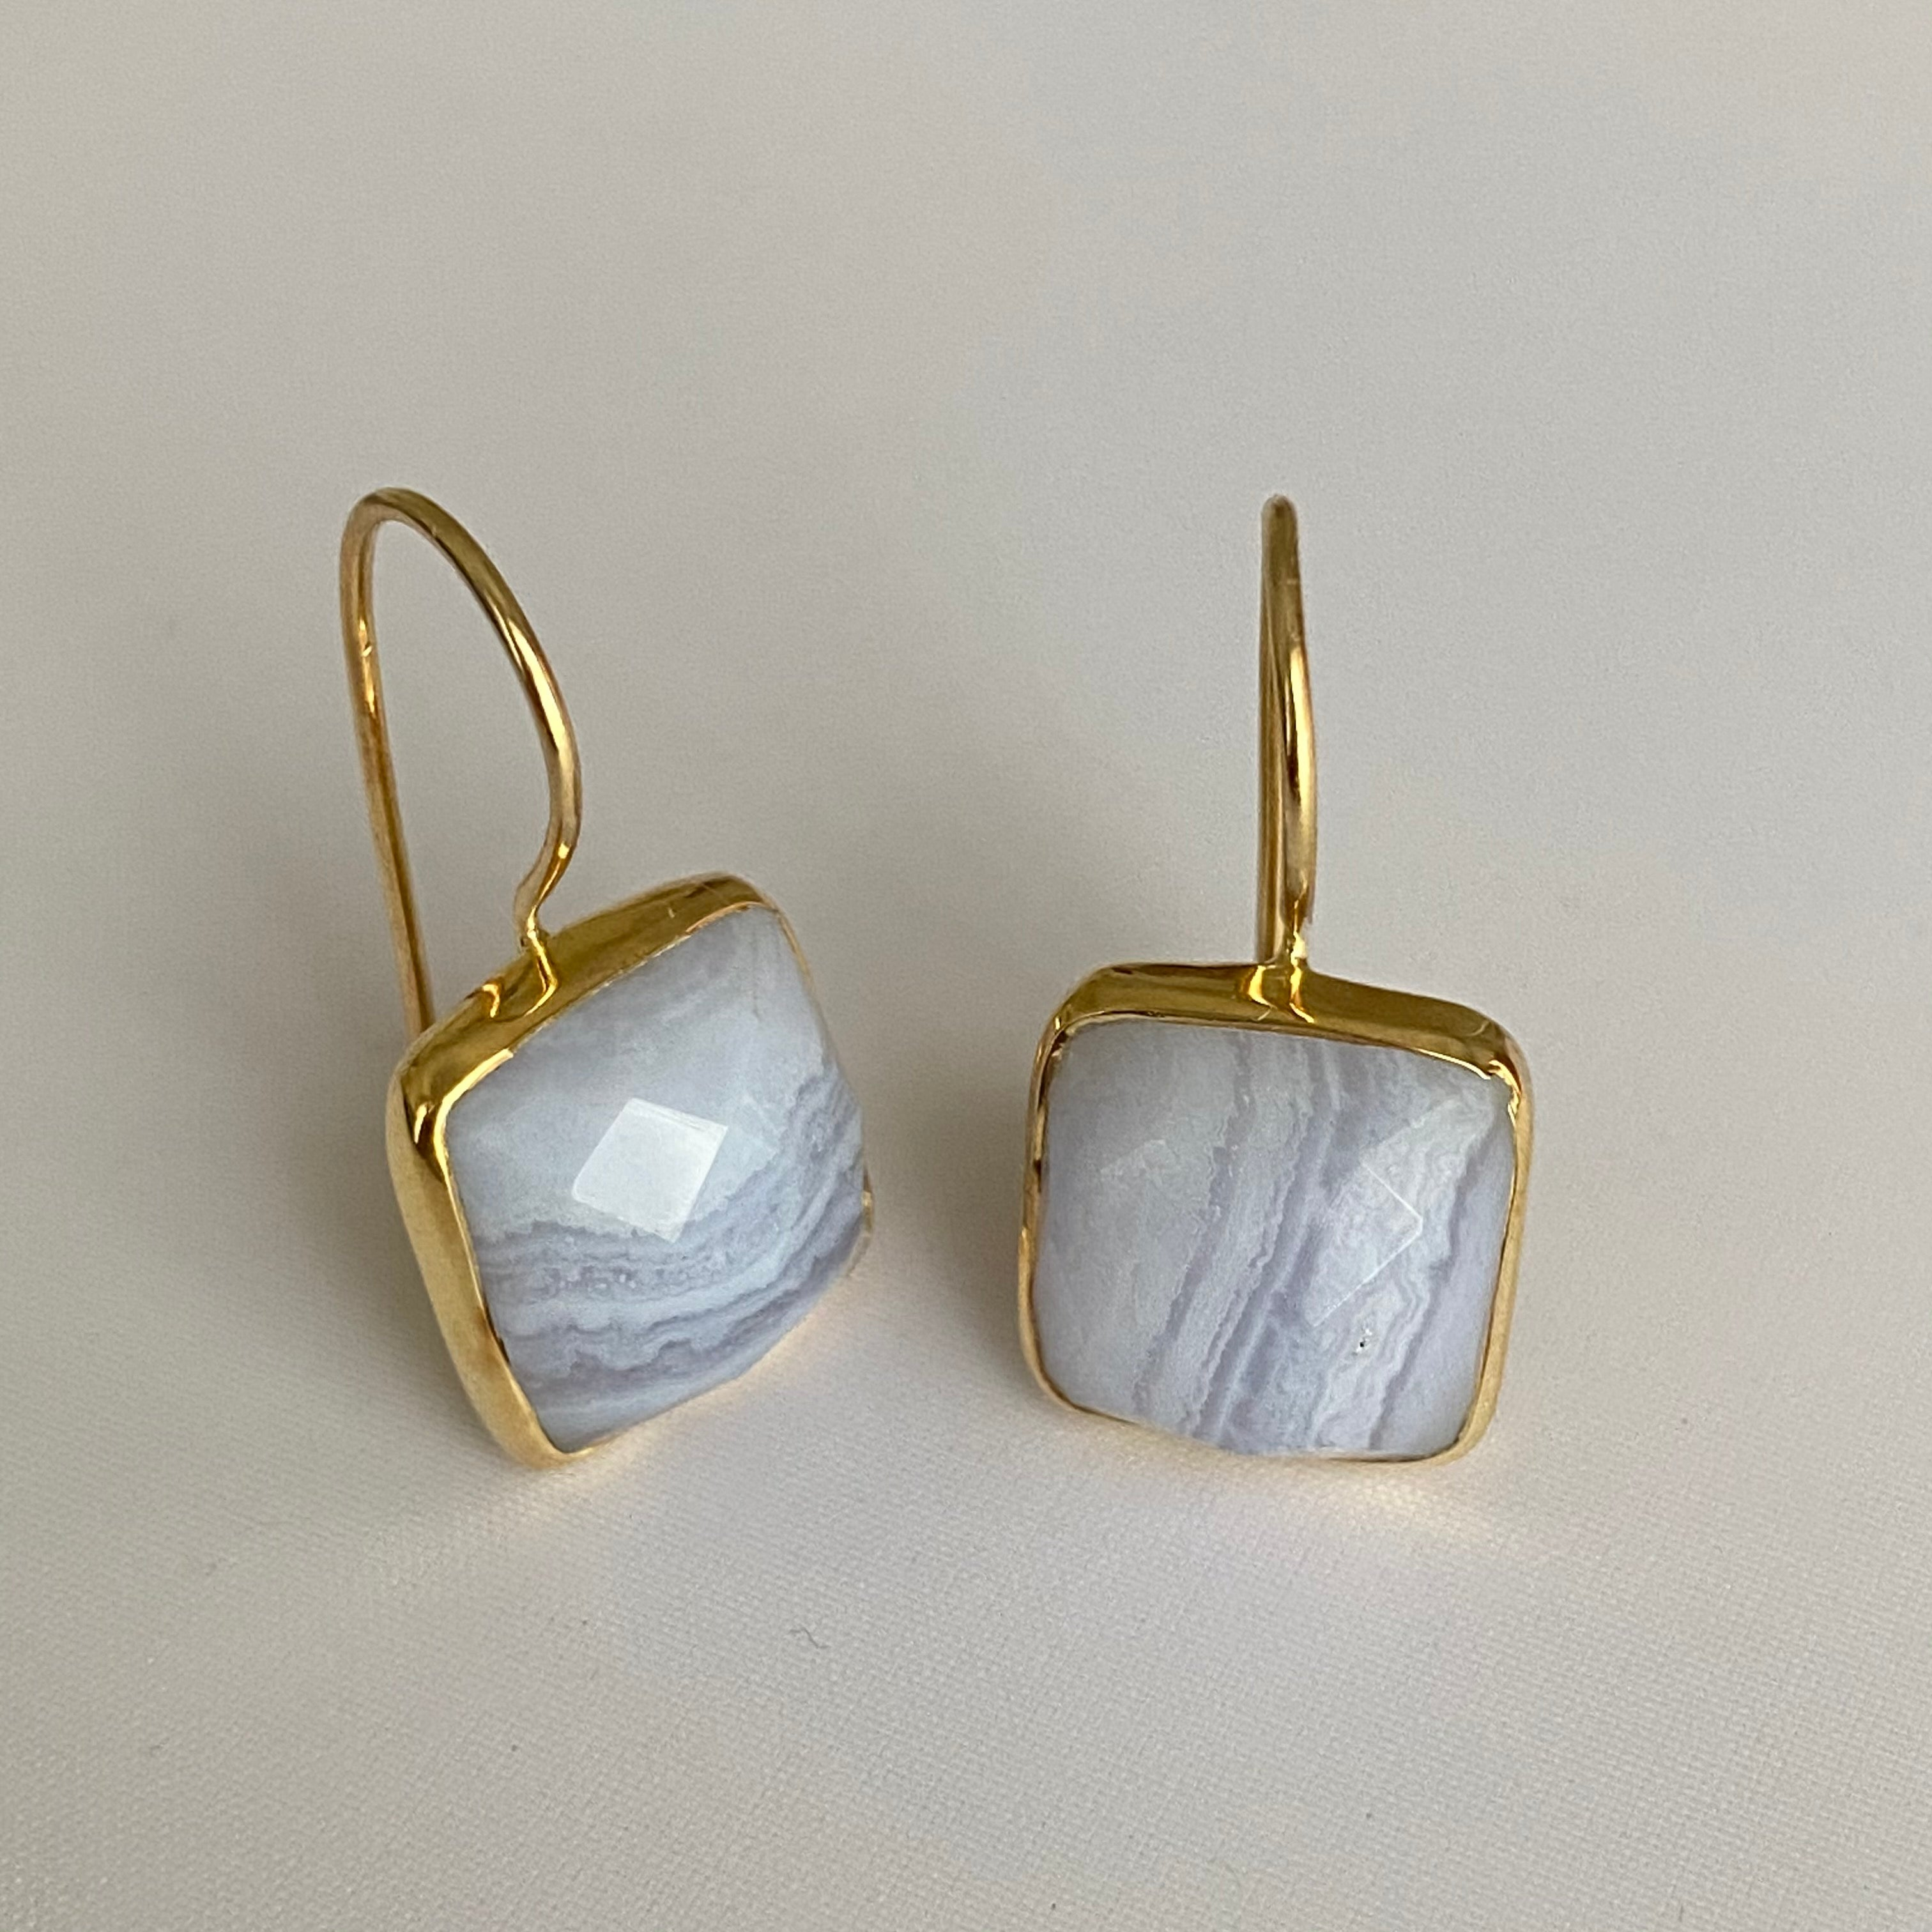 Gold Plated Sterling Silver Square Gemstone Earrings - Blue Laced Agate